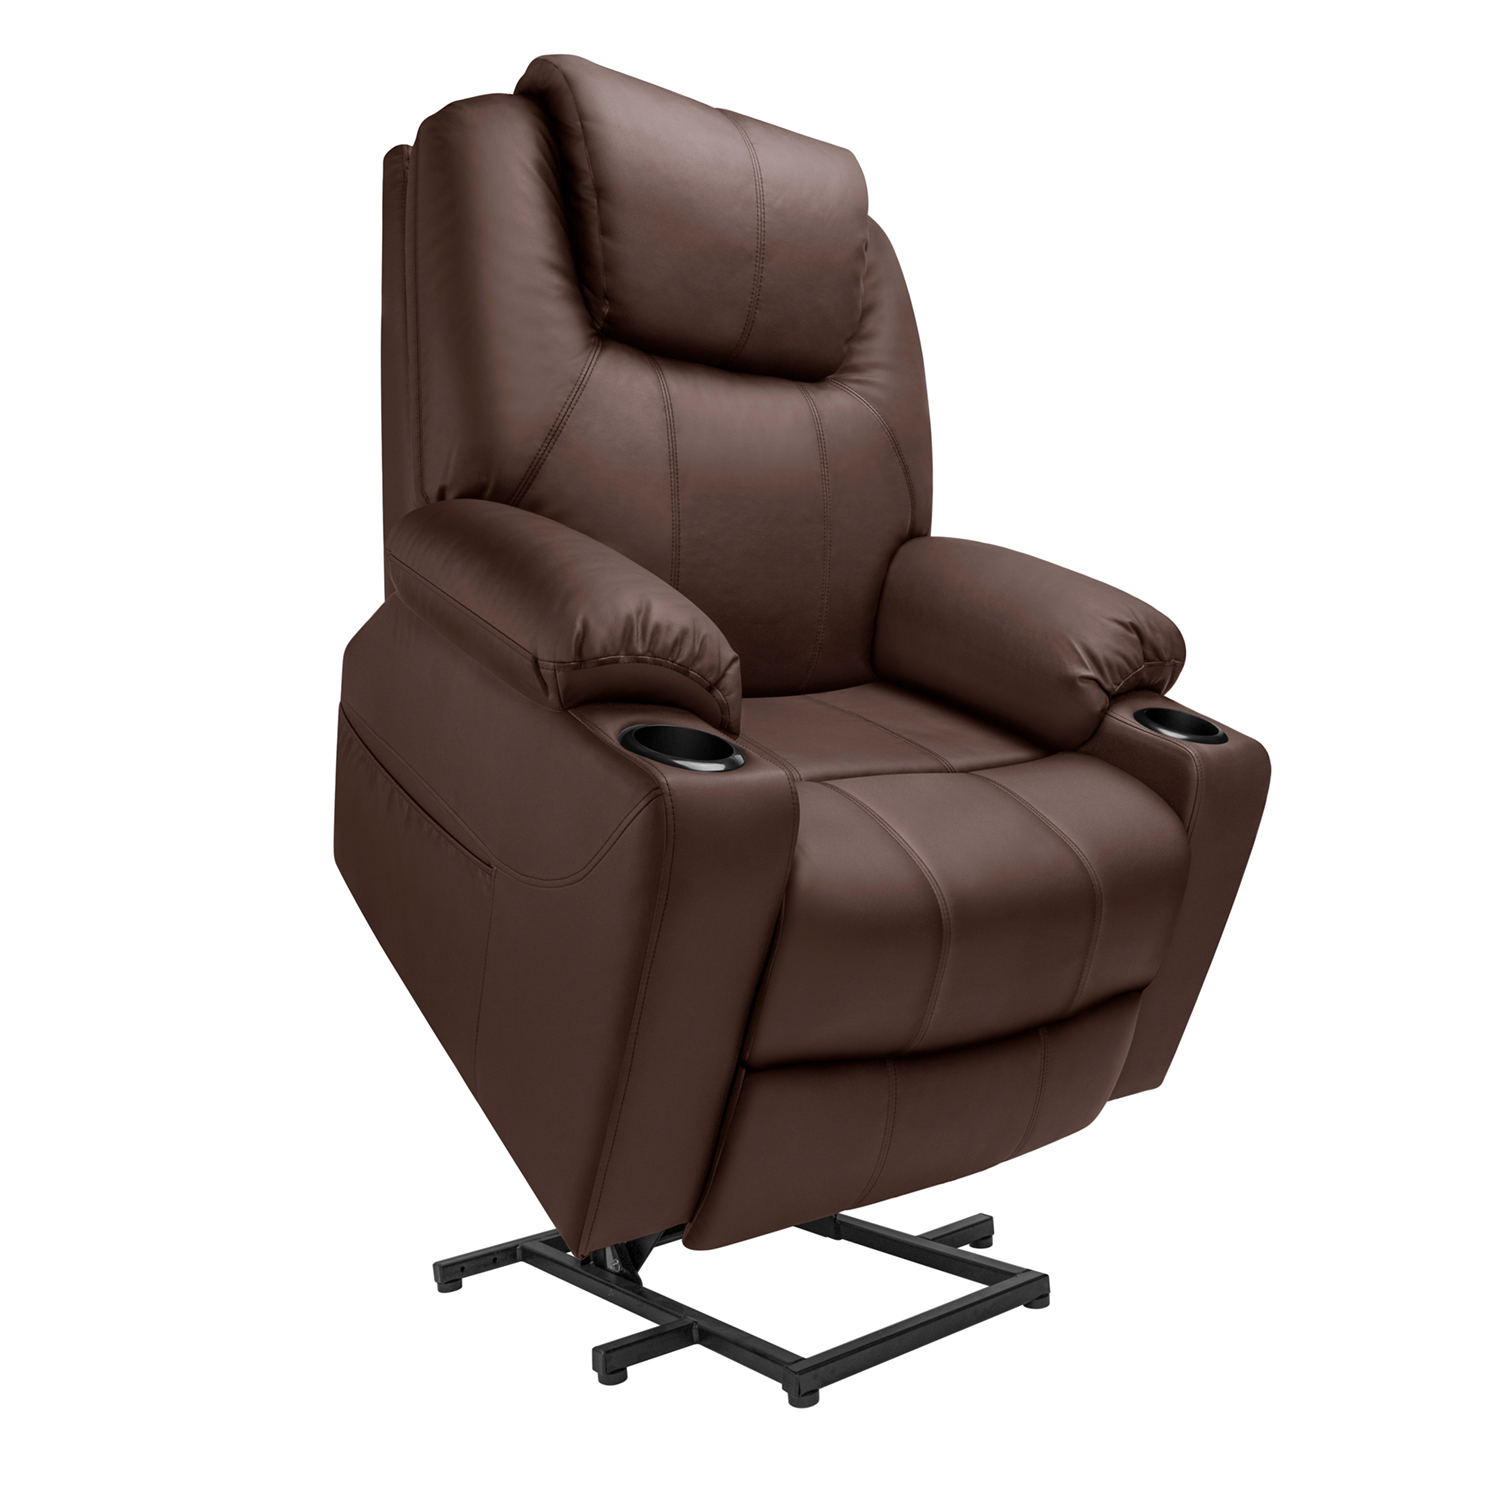 2021 Upgraded Electric Massage Chair Power Lift Recliner Chairs Leisure Soft Sofa Full Body Shiatsu Lounge Armchair for Elderly 7